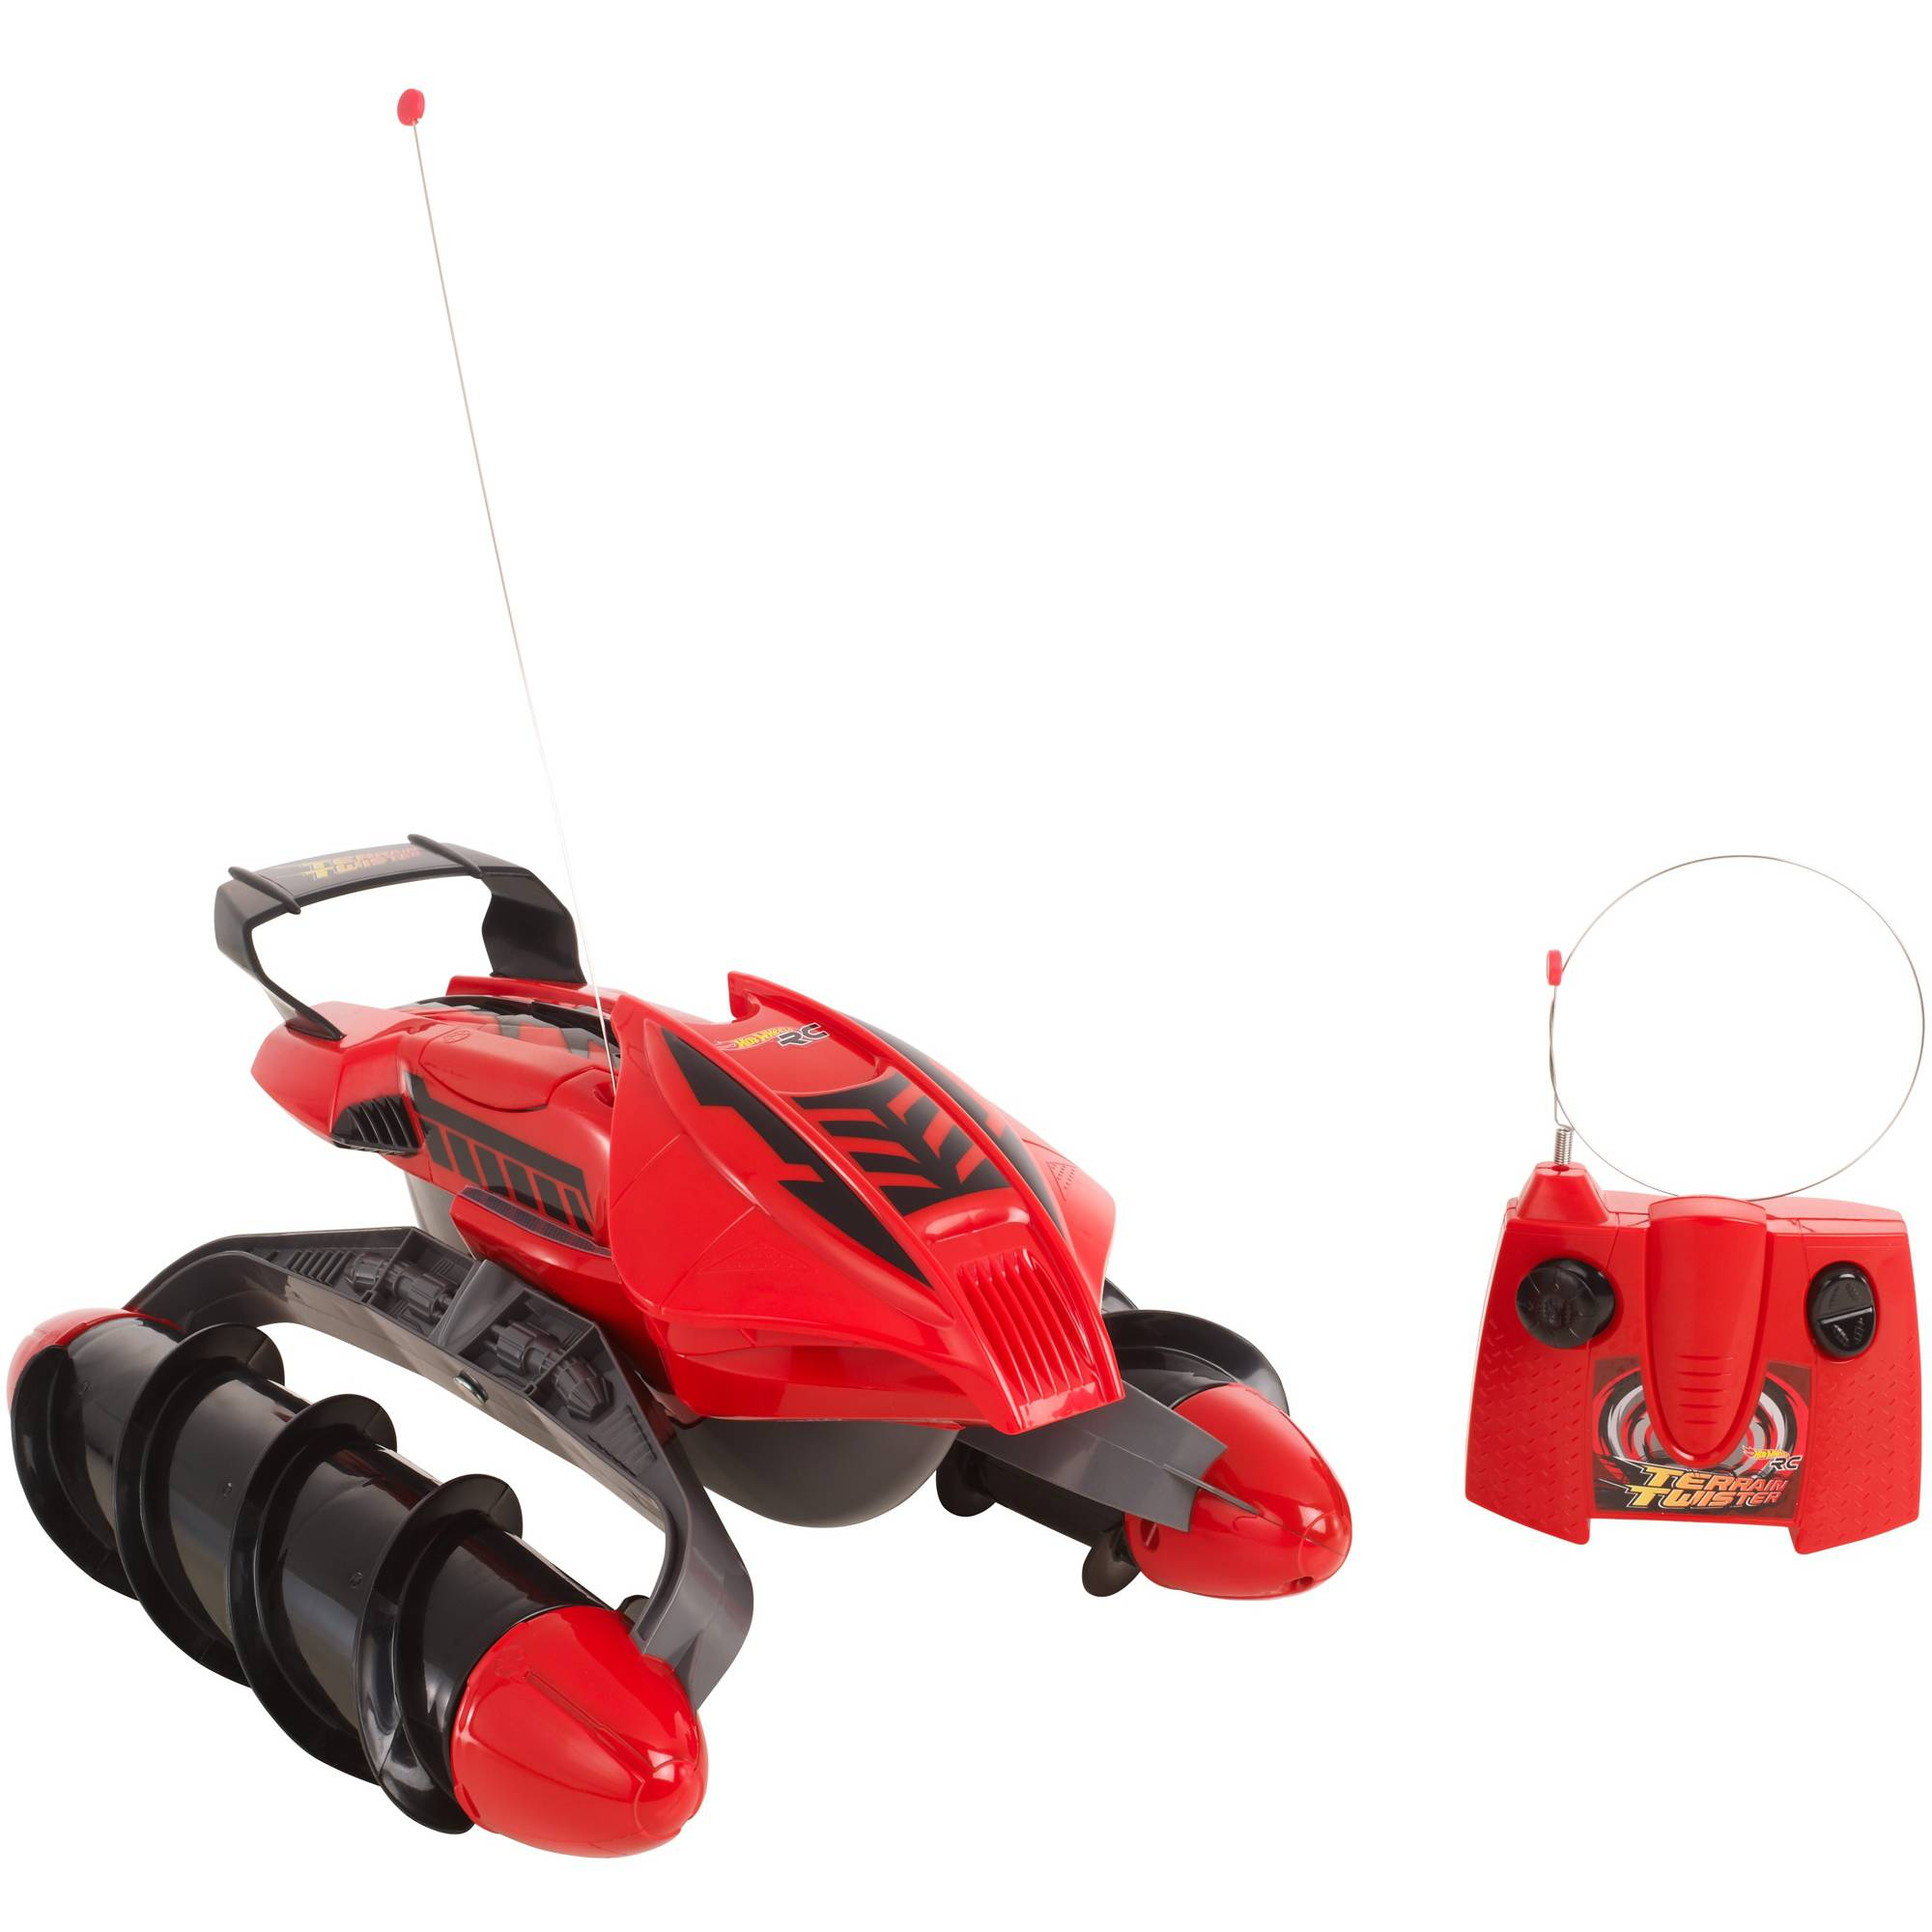 Hot Wheels Terrain Twister Vehicle, Red